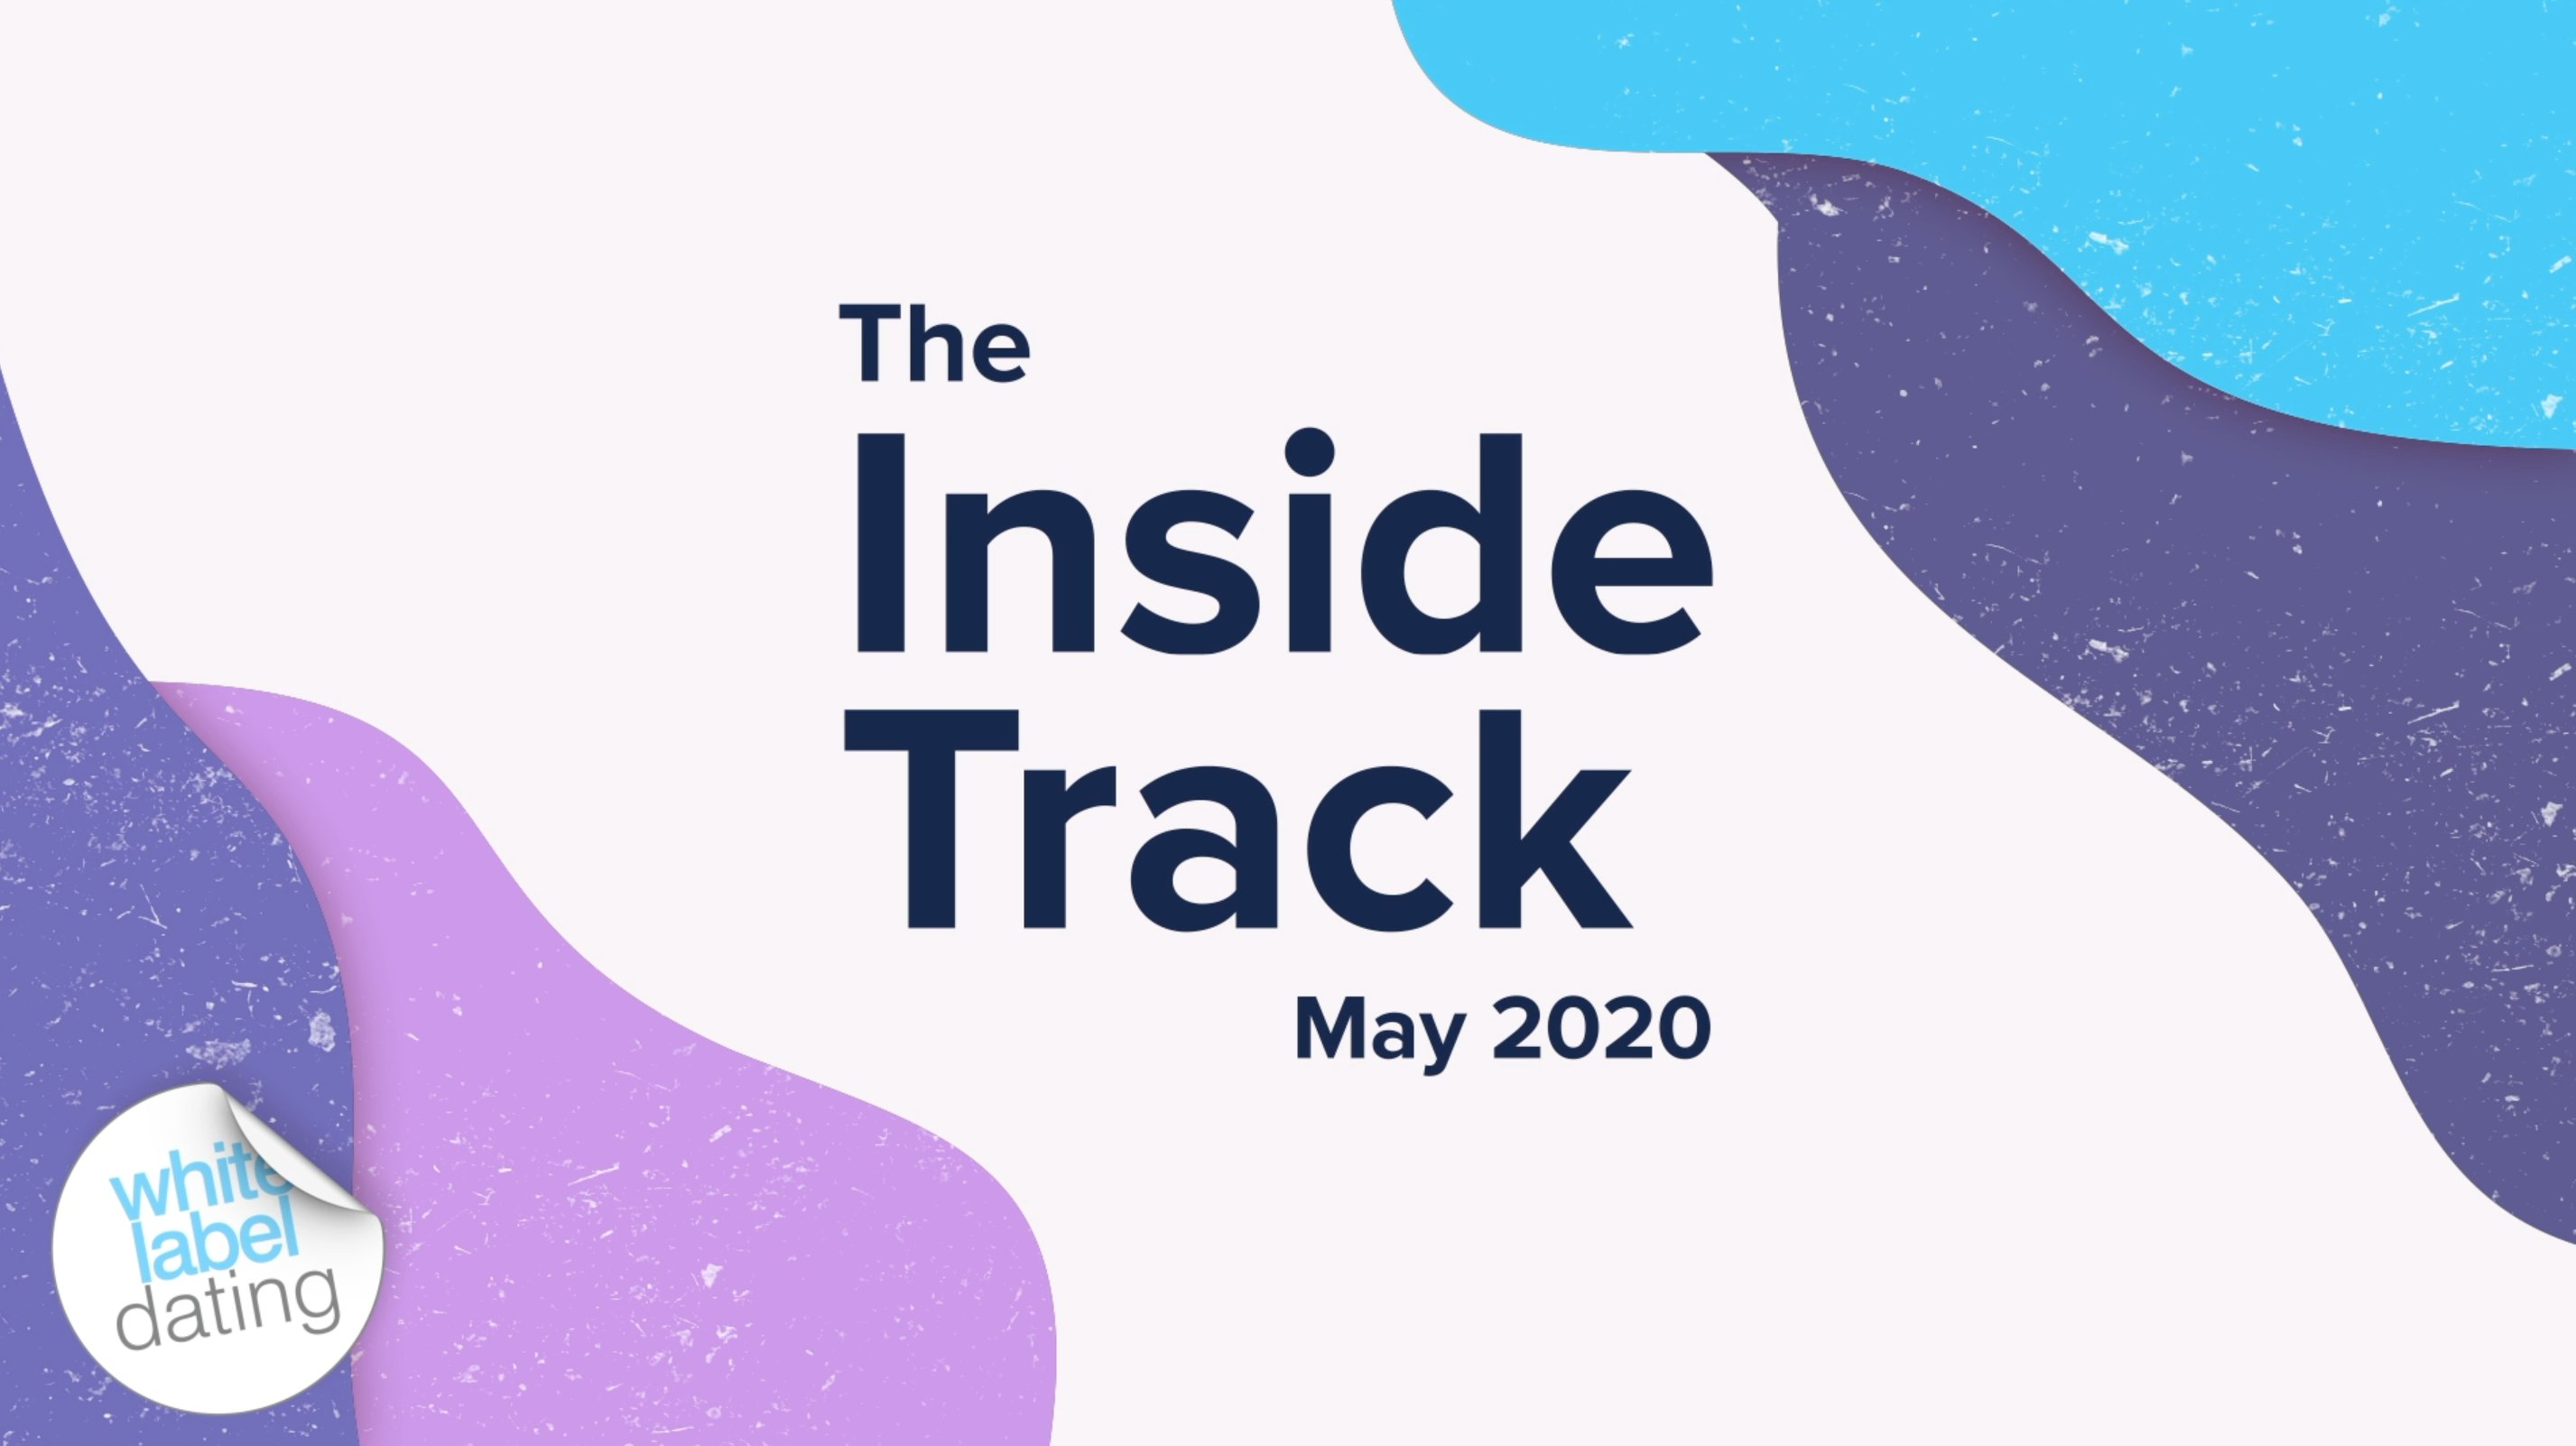 The Inside Track May 2020